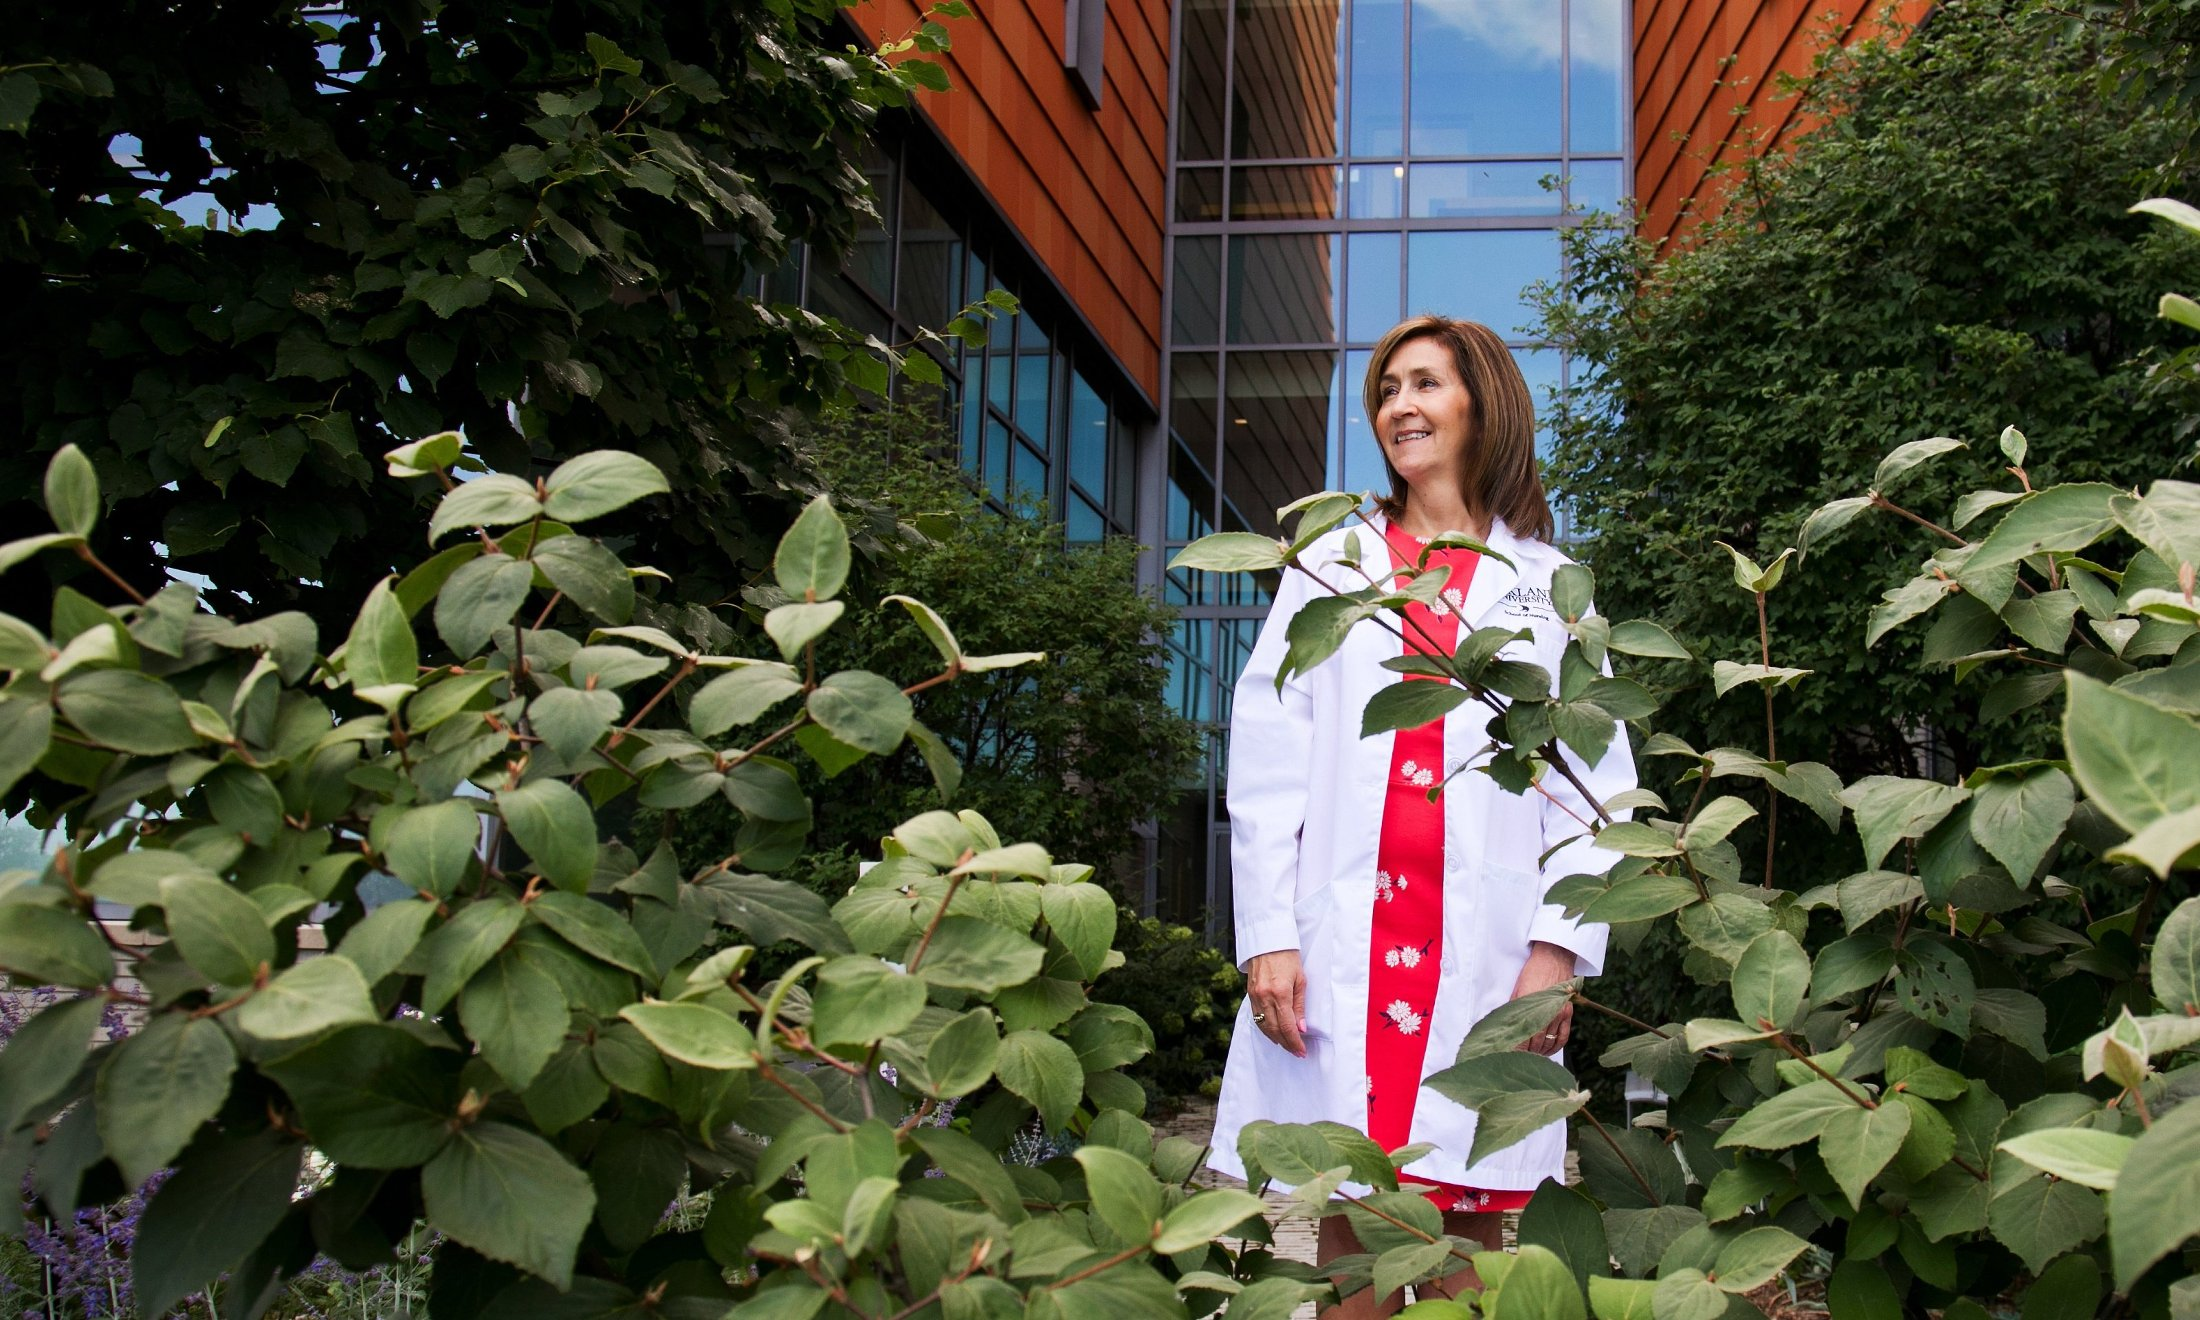 Andrea Bittinger standing behind some greenery outside of a building